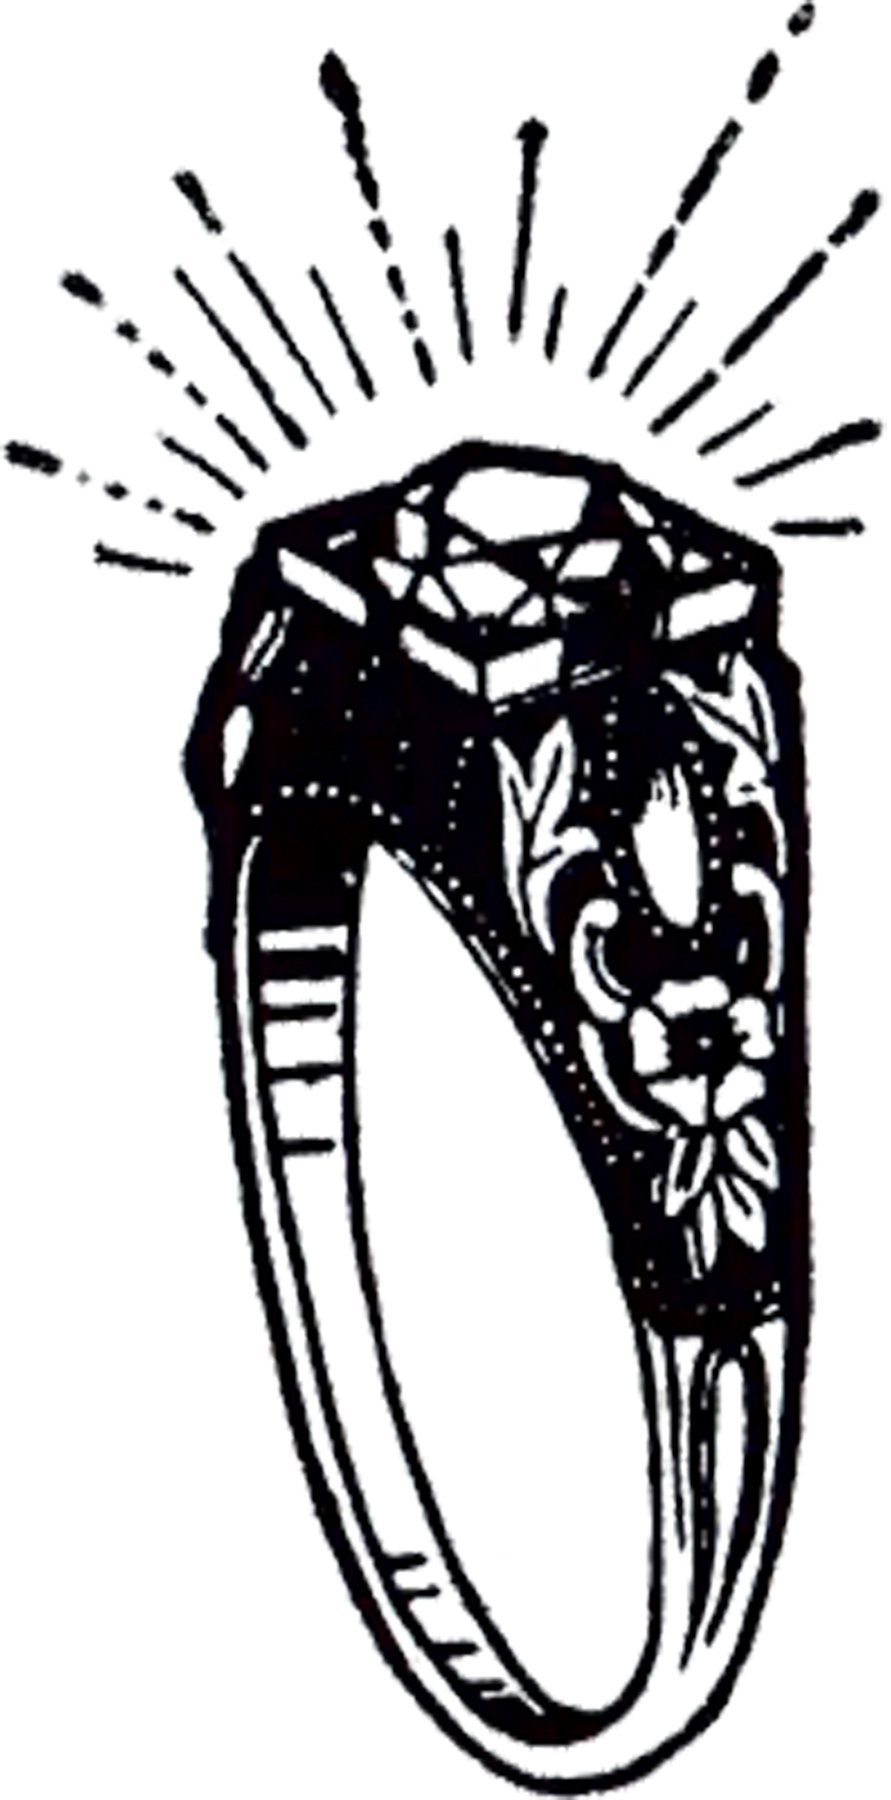 Double wedding rings clipart free image royalty free stock Free Clip art of Wedding Rings Clipart Black and White #2996 Best ... image royalty free stock